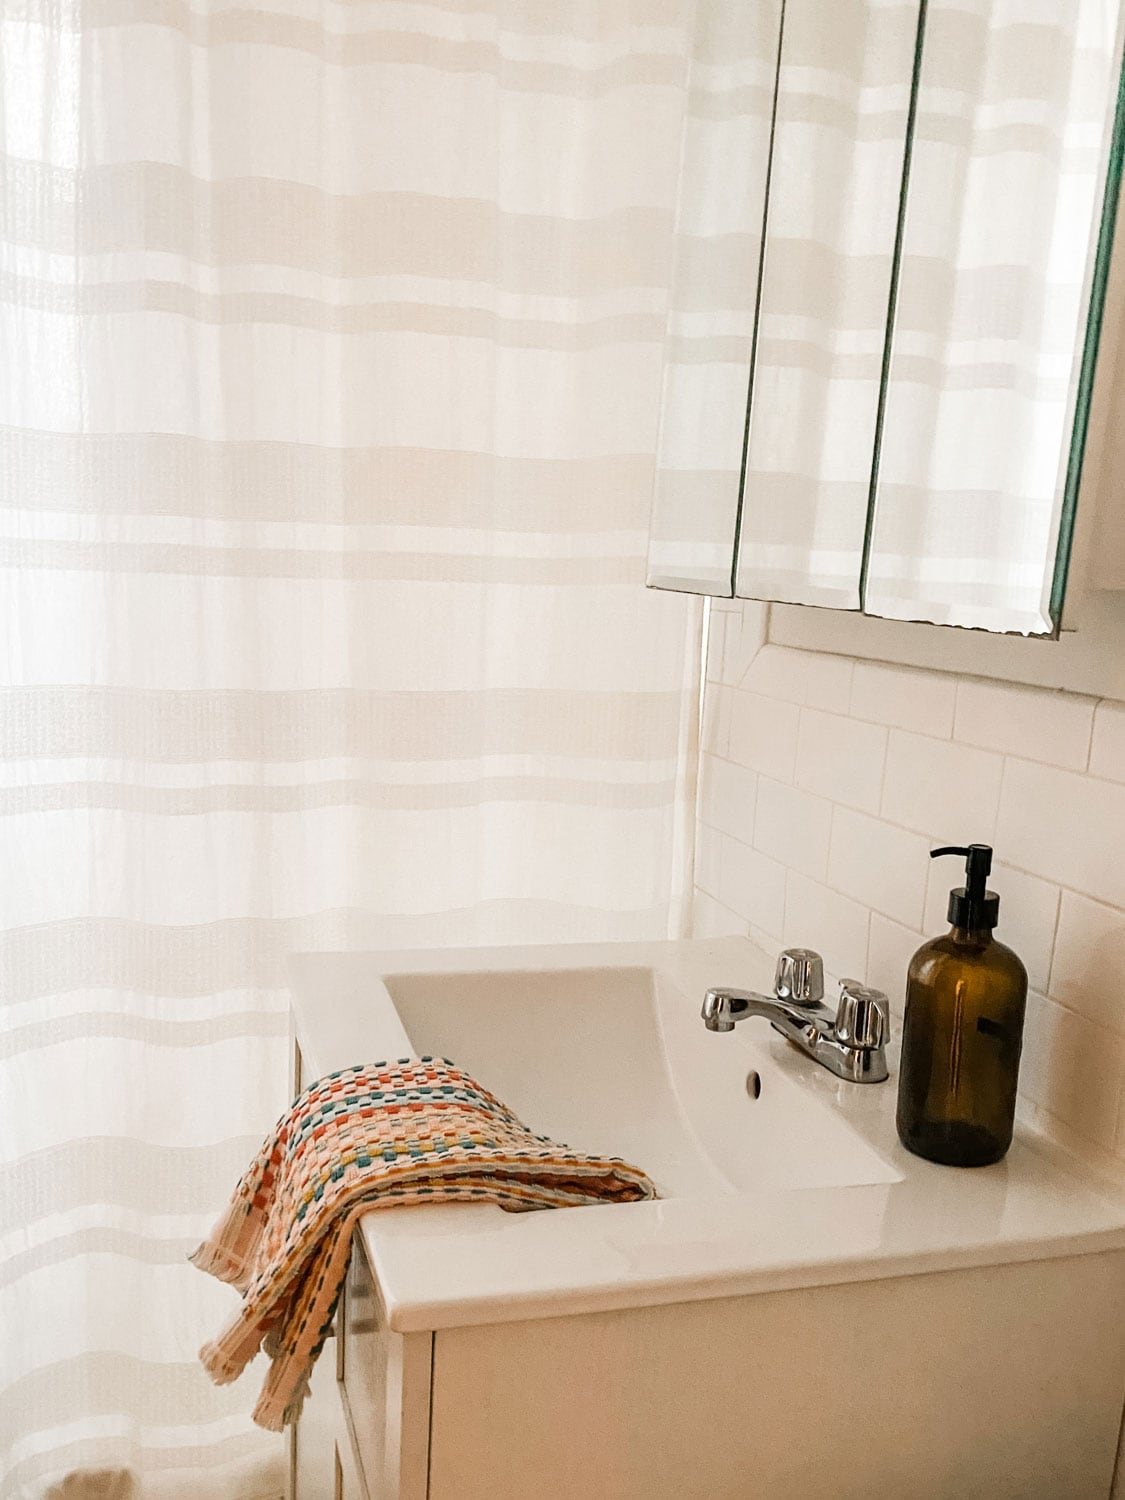 all white bathroom with soap bottle and towel